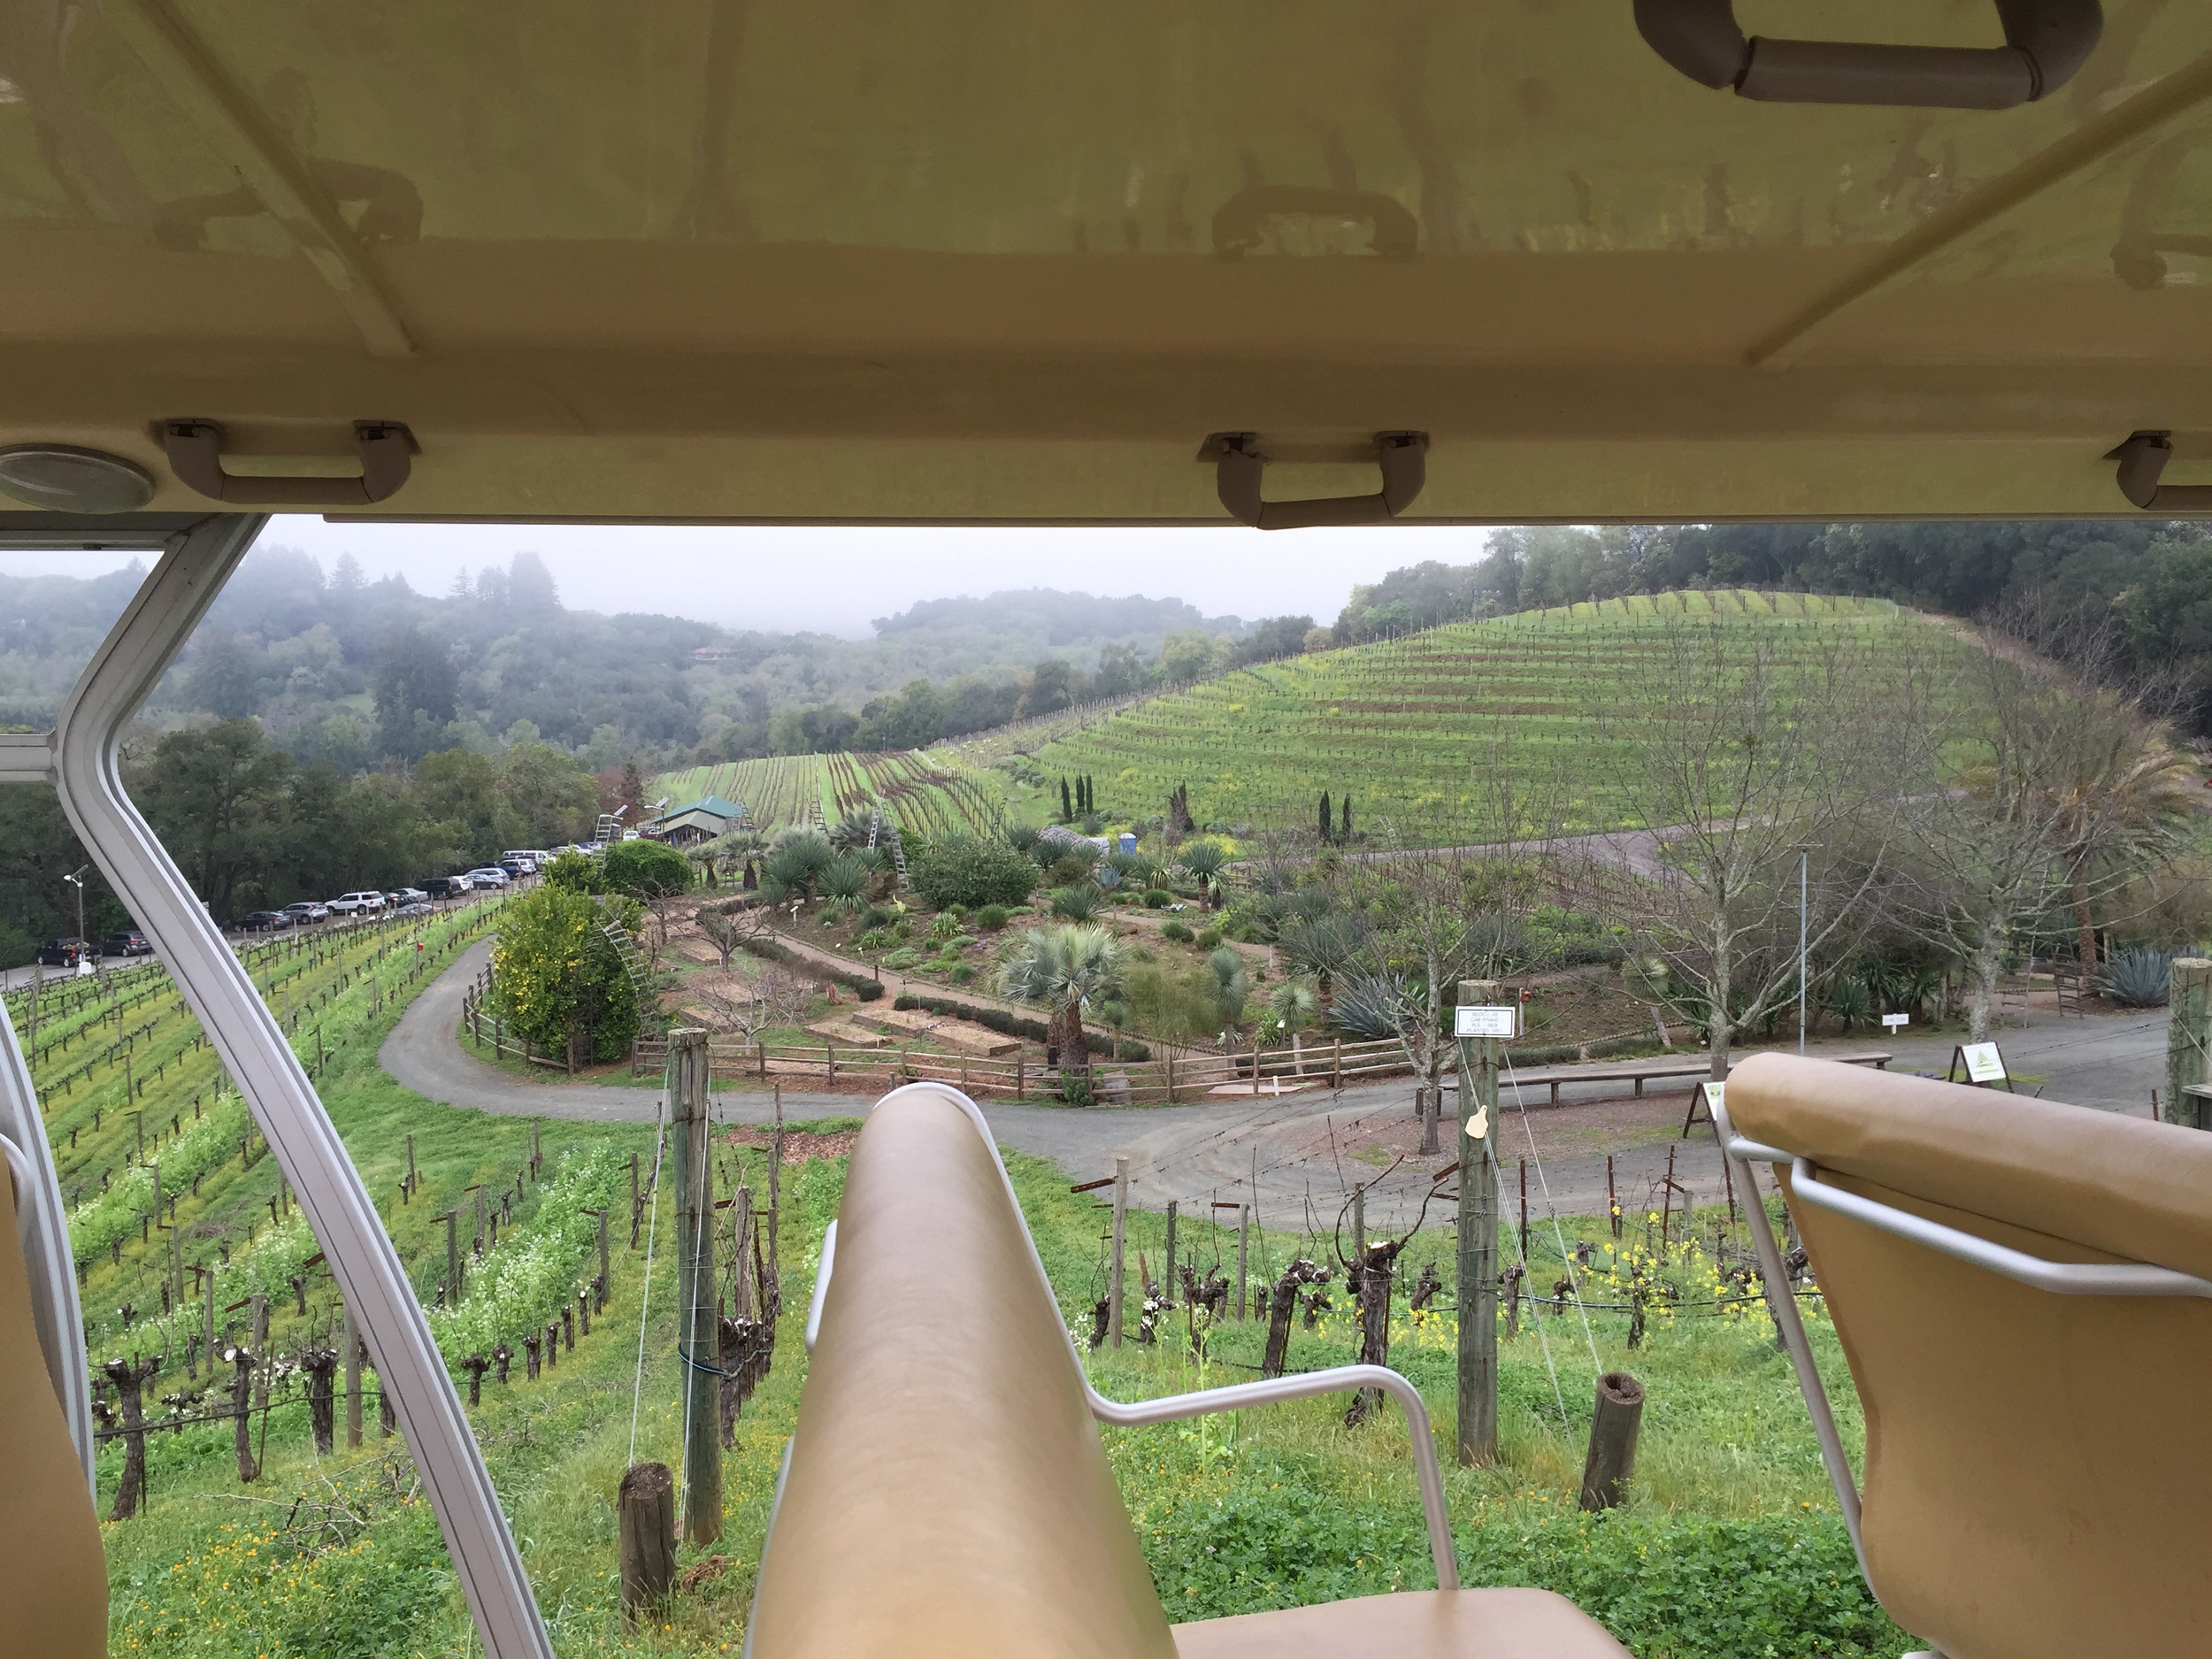 A view of the winery from the trolly car. (Emi Kolawole)